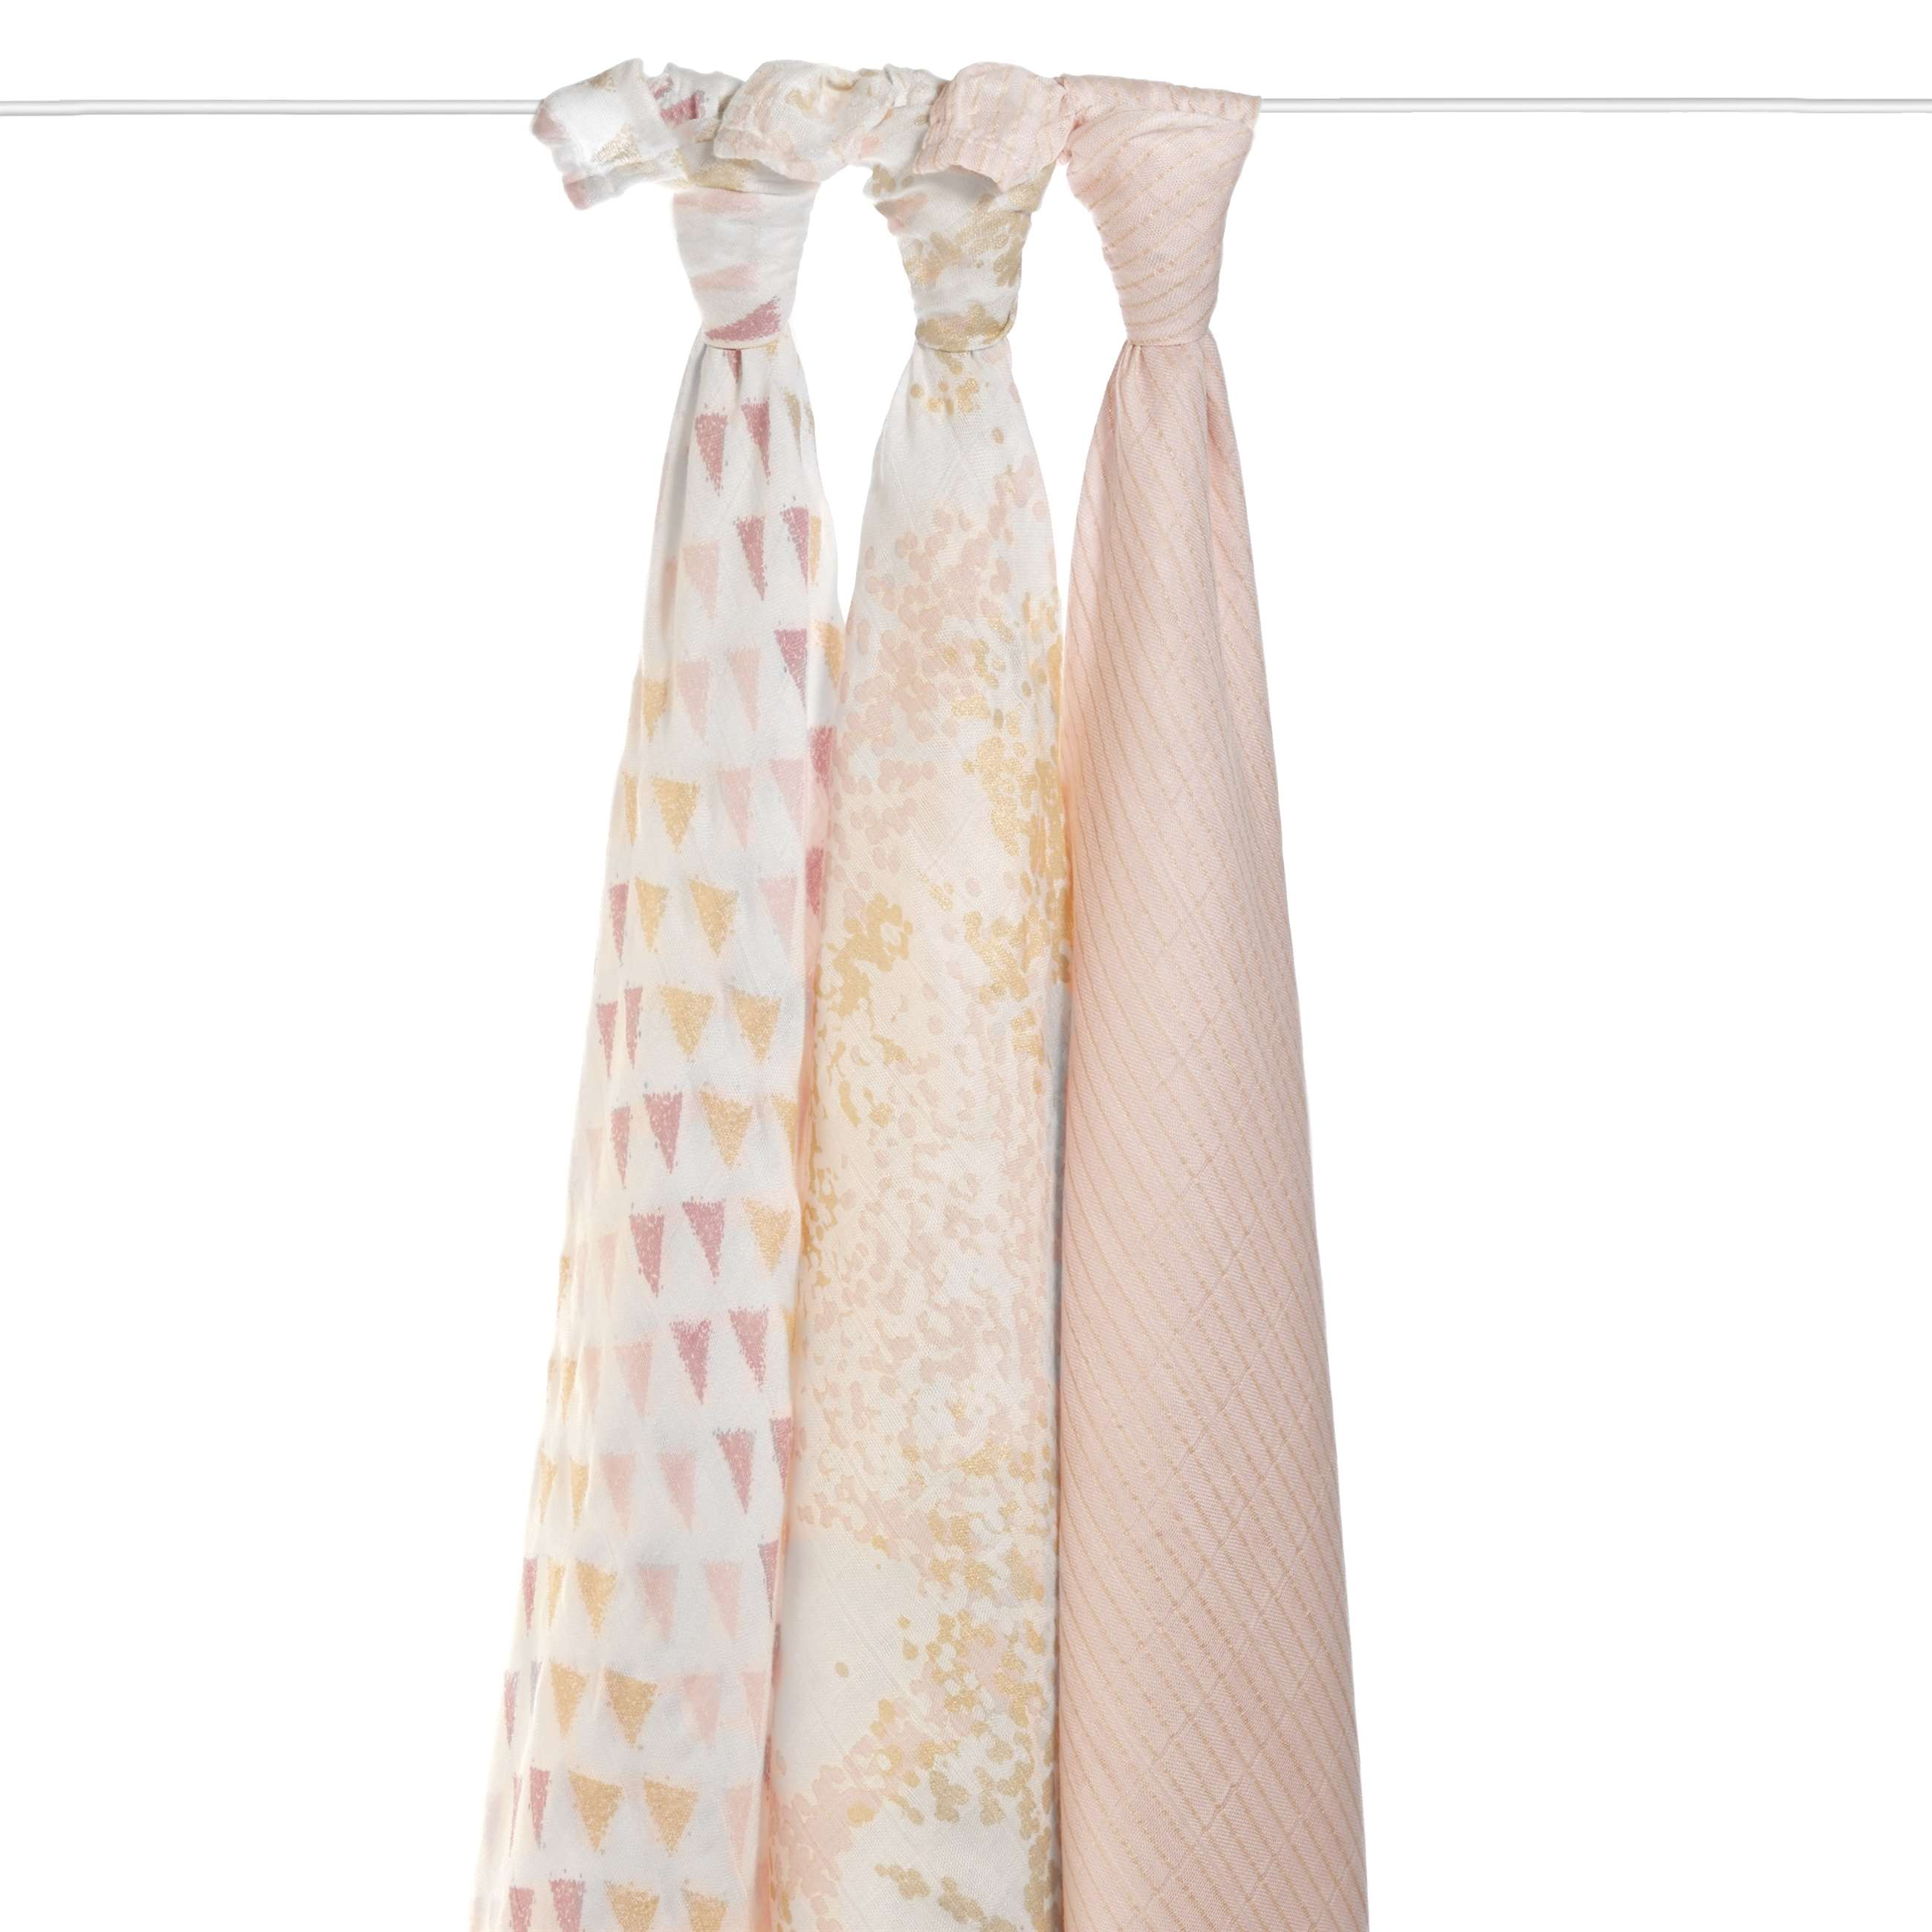 9216_1-silky-soft-swaddle-metallic-primrose-birch-hanging